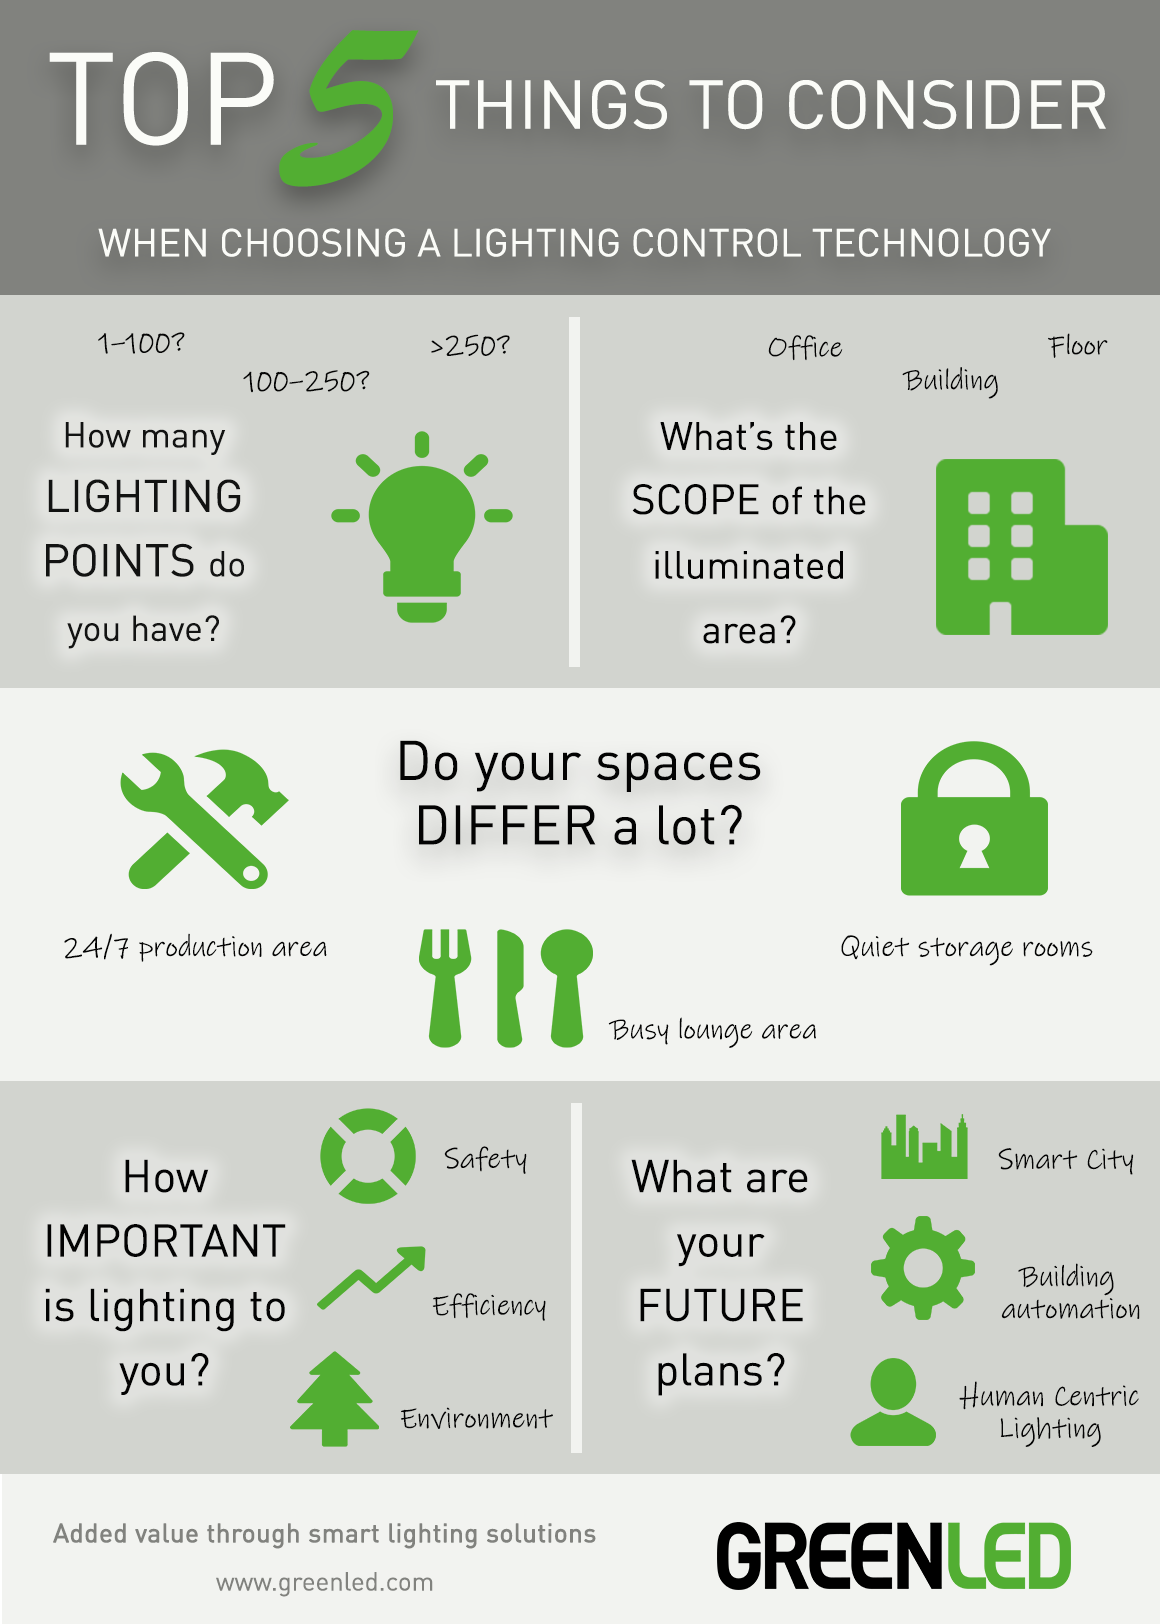 Top 5 things to consider when choosing a lighting control technology